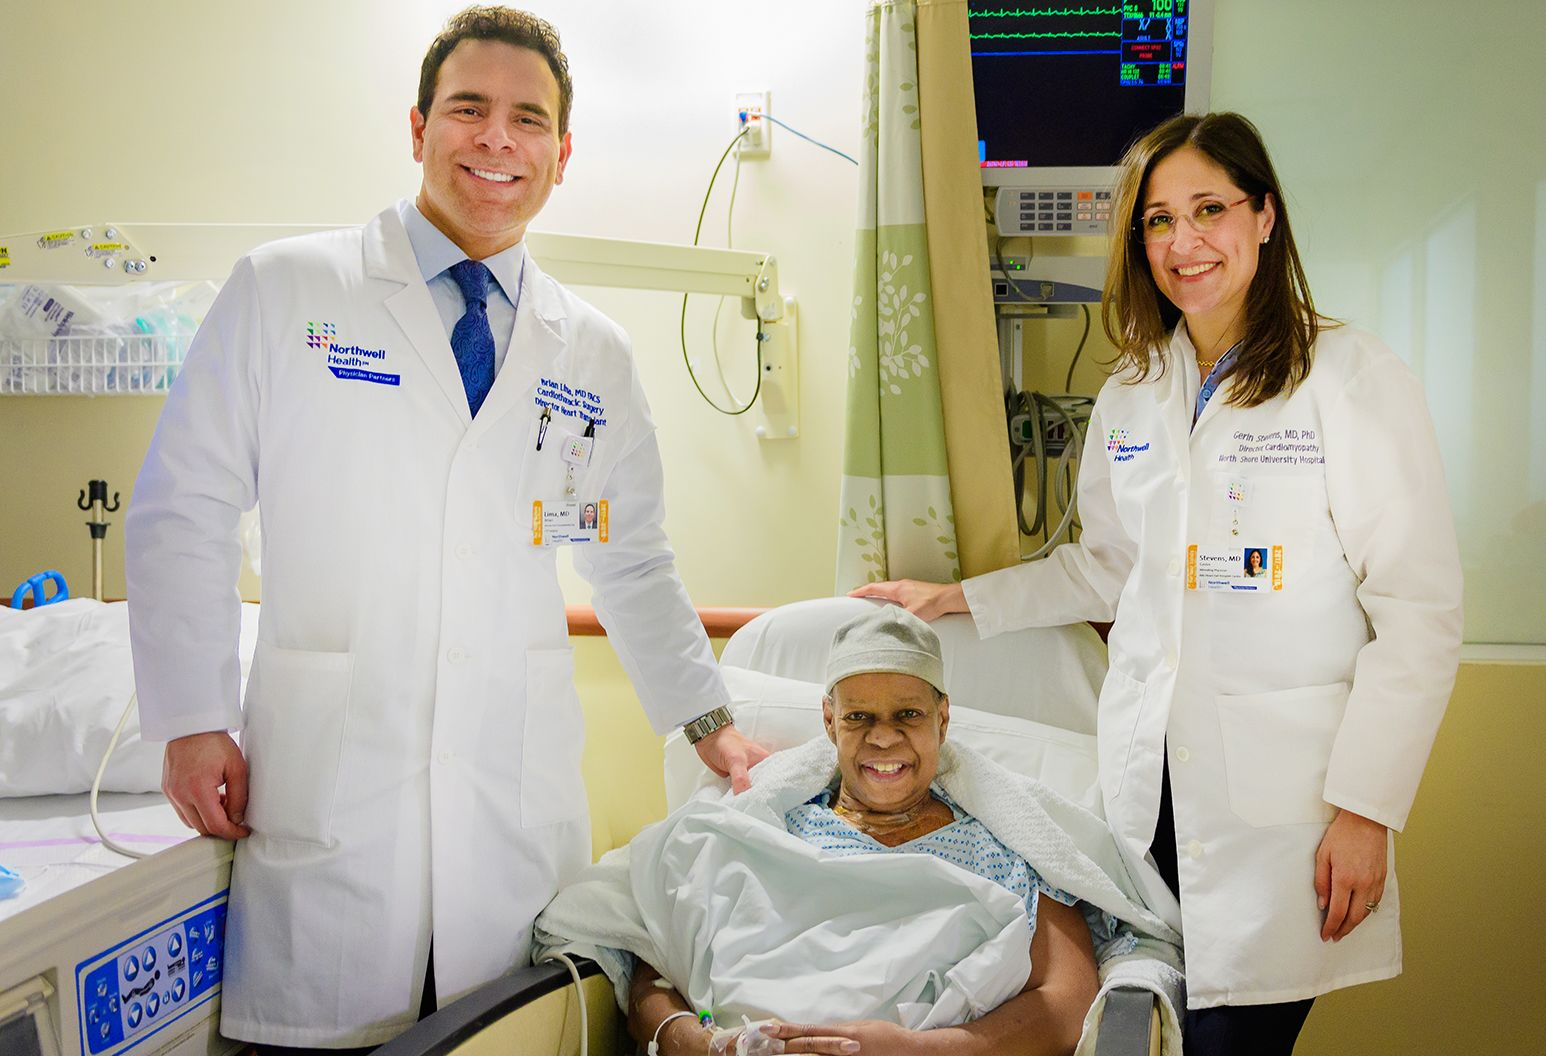 A woman sits in a hospital chair wearing a hospital gown and a grey cap. She has a white sheet wrapped around her. To the left stands a man in a button down shirt, tie and white lab coat. To the right stands a woman with glasses and a white lab coat.